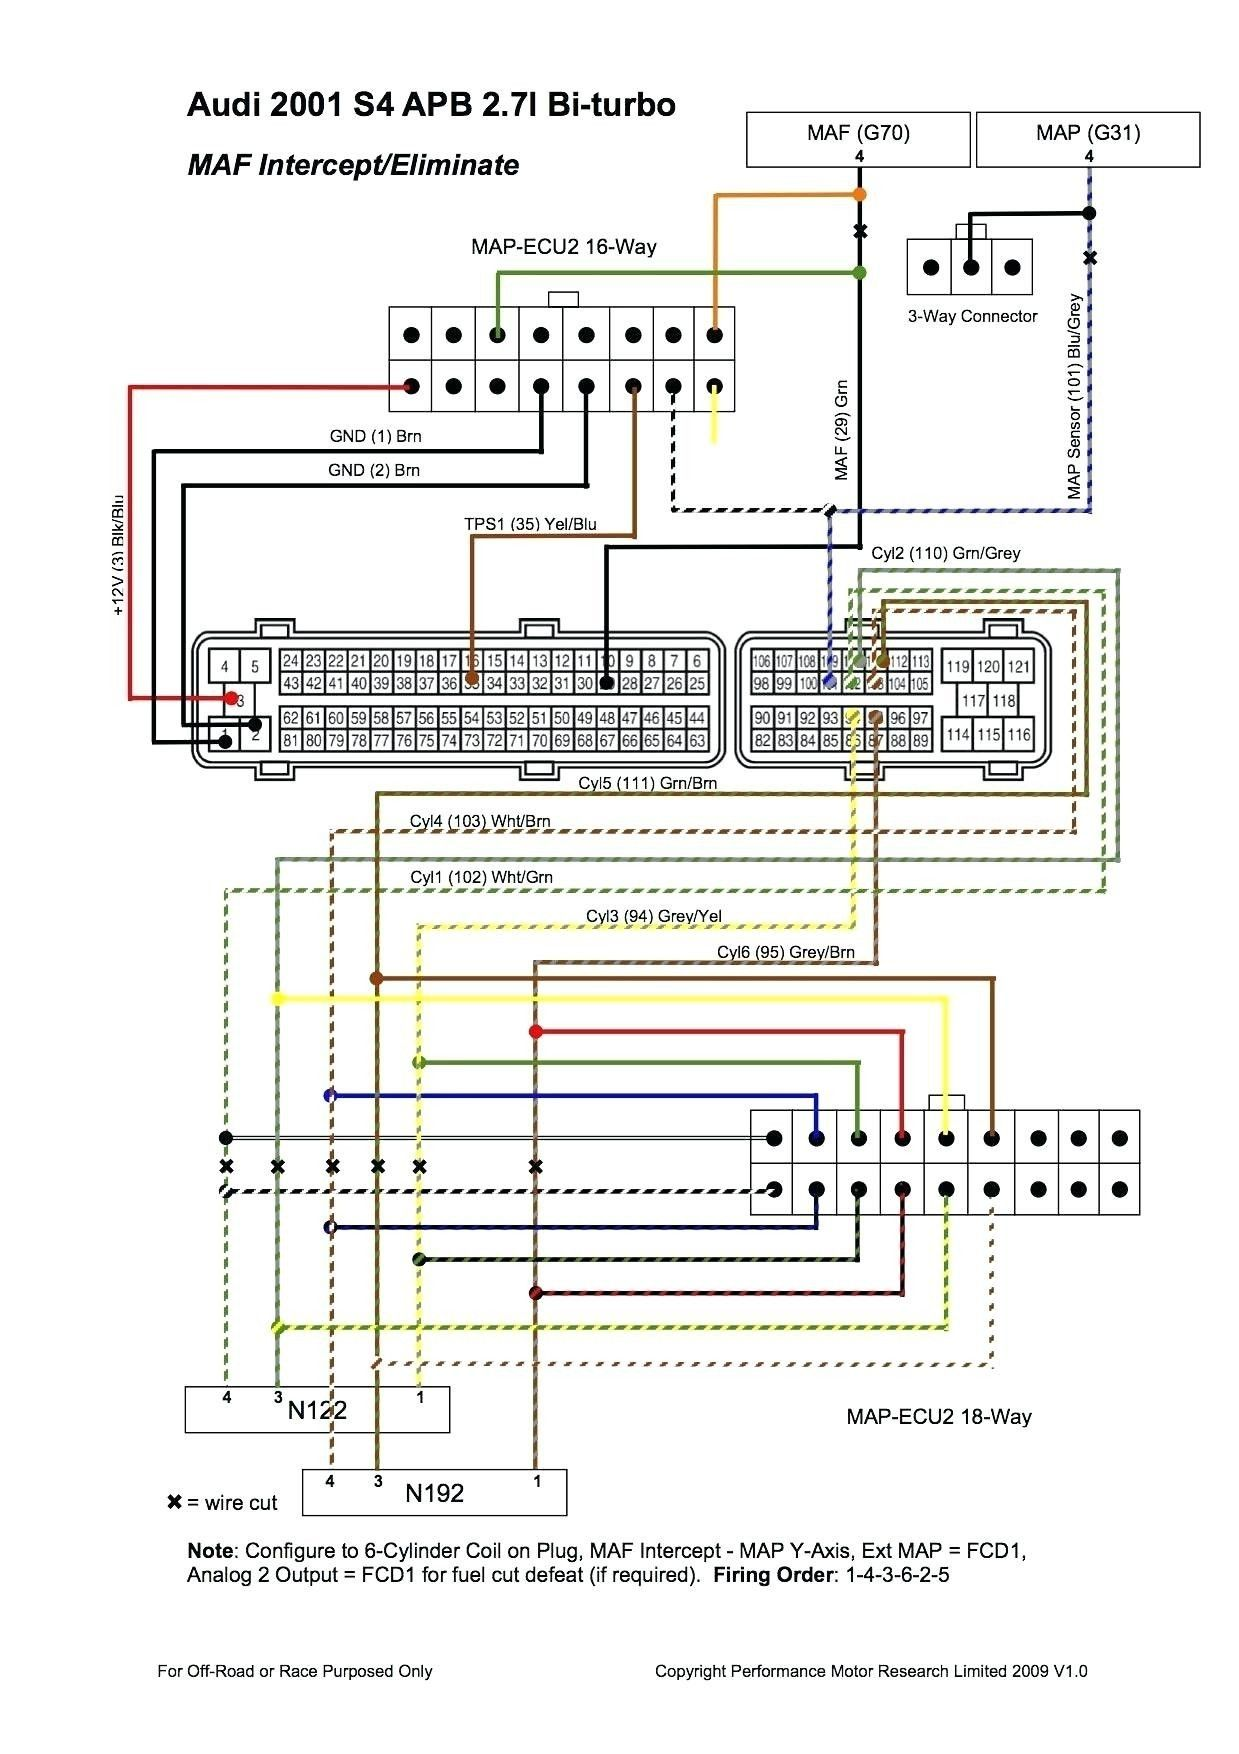 beautiful wiring diagram kancil 660 #diagrams #digramssample #diagramimages  #wiringdiagramsample #wiringdiagram | toyota, mitsubishi lancer, dodge  pinterest